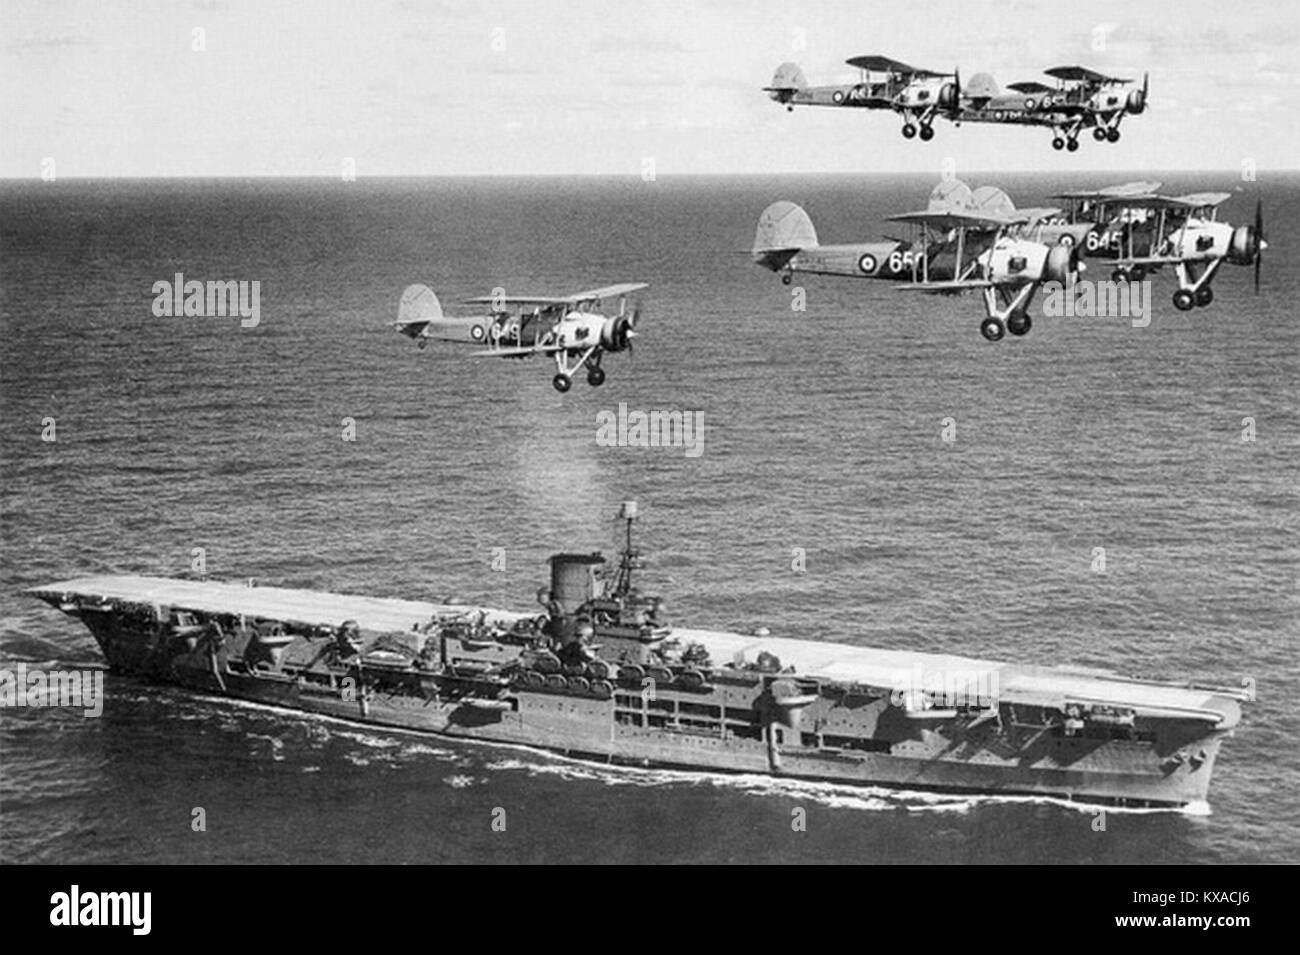 The aircraft carrier HMS Ark Royal with a flight of Swordfish overhead - Stock Image